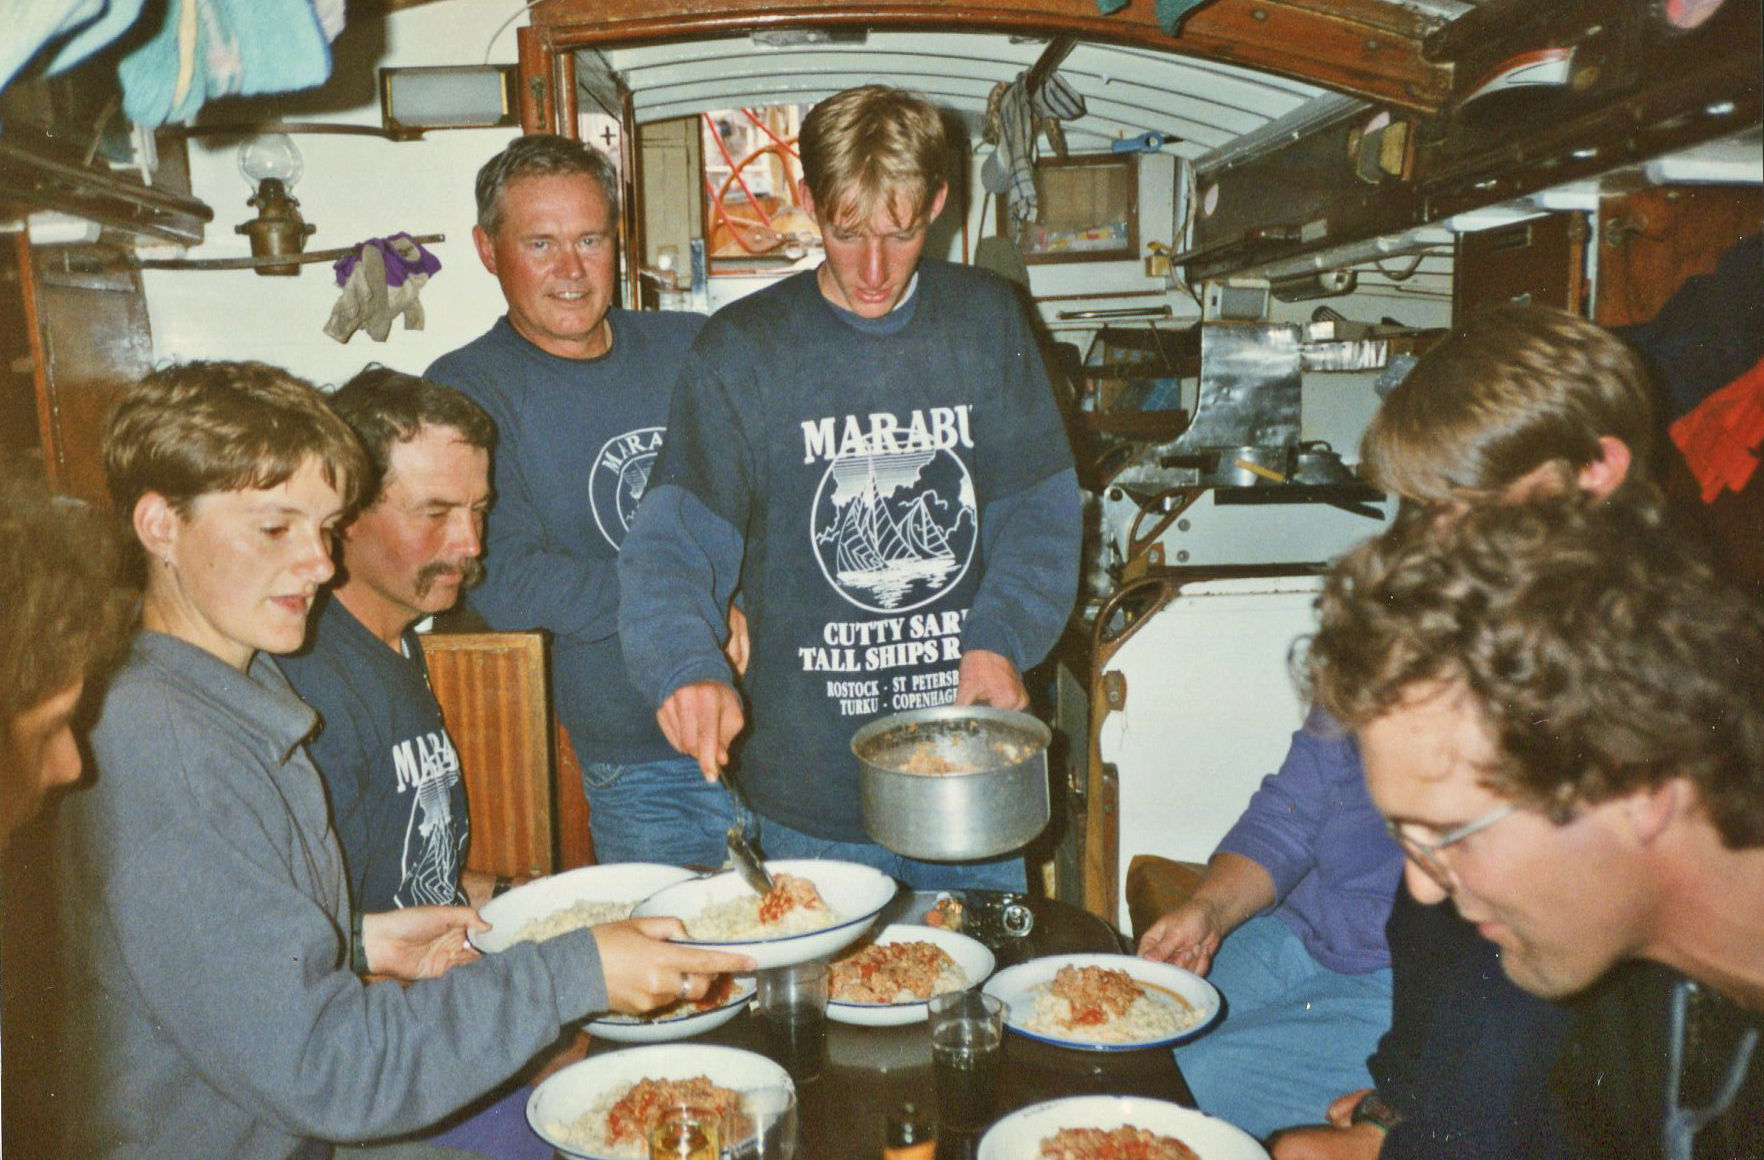 Meal on board Marabu